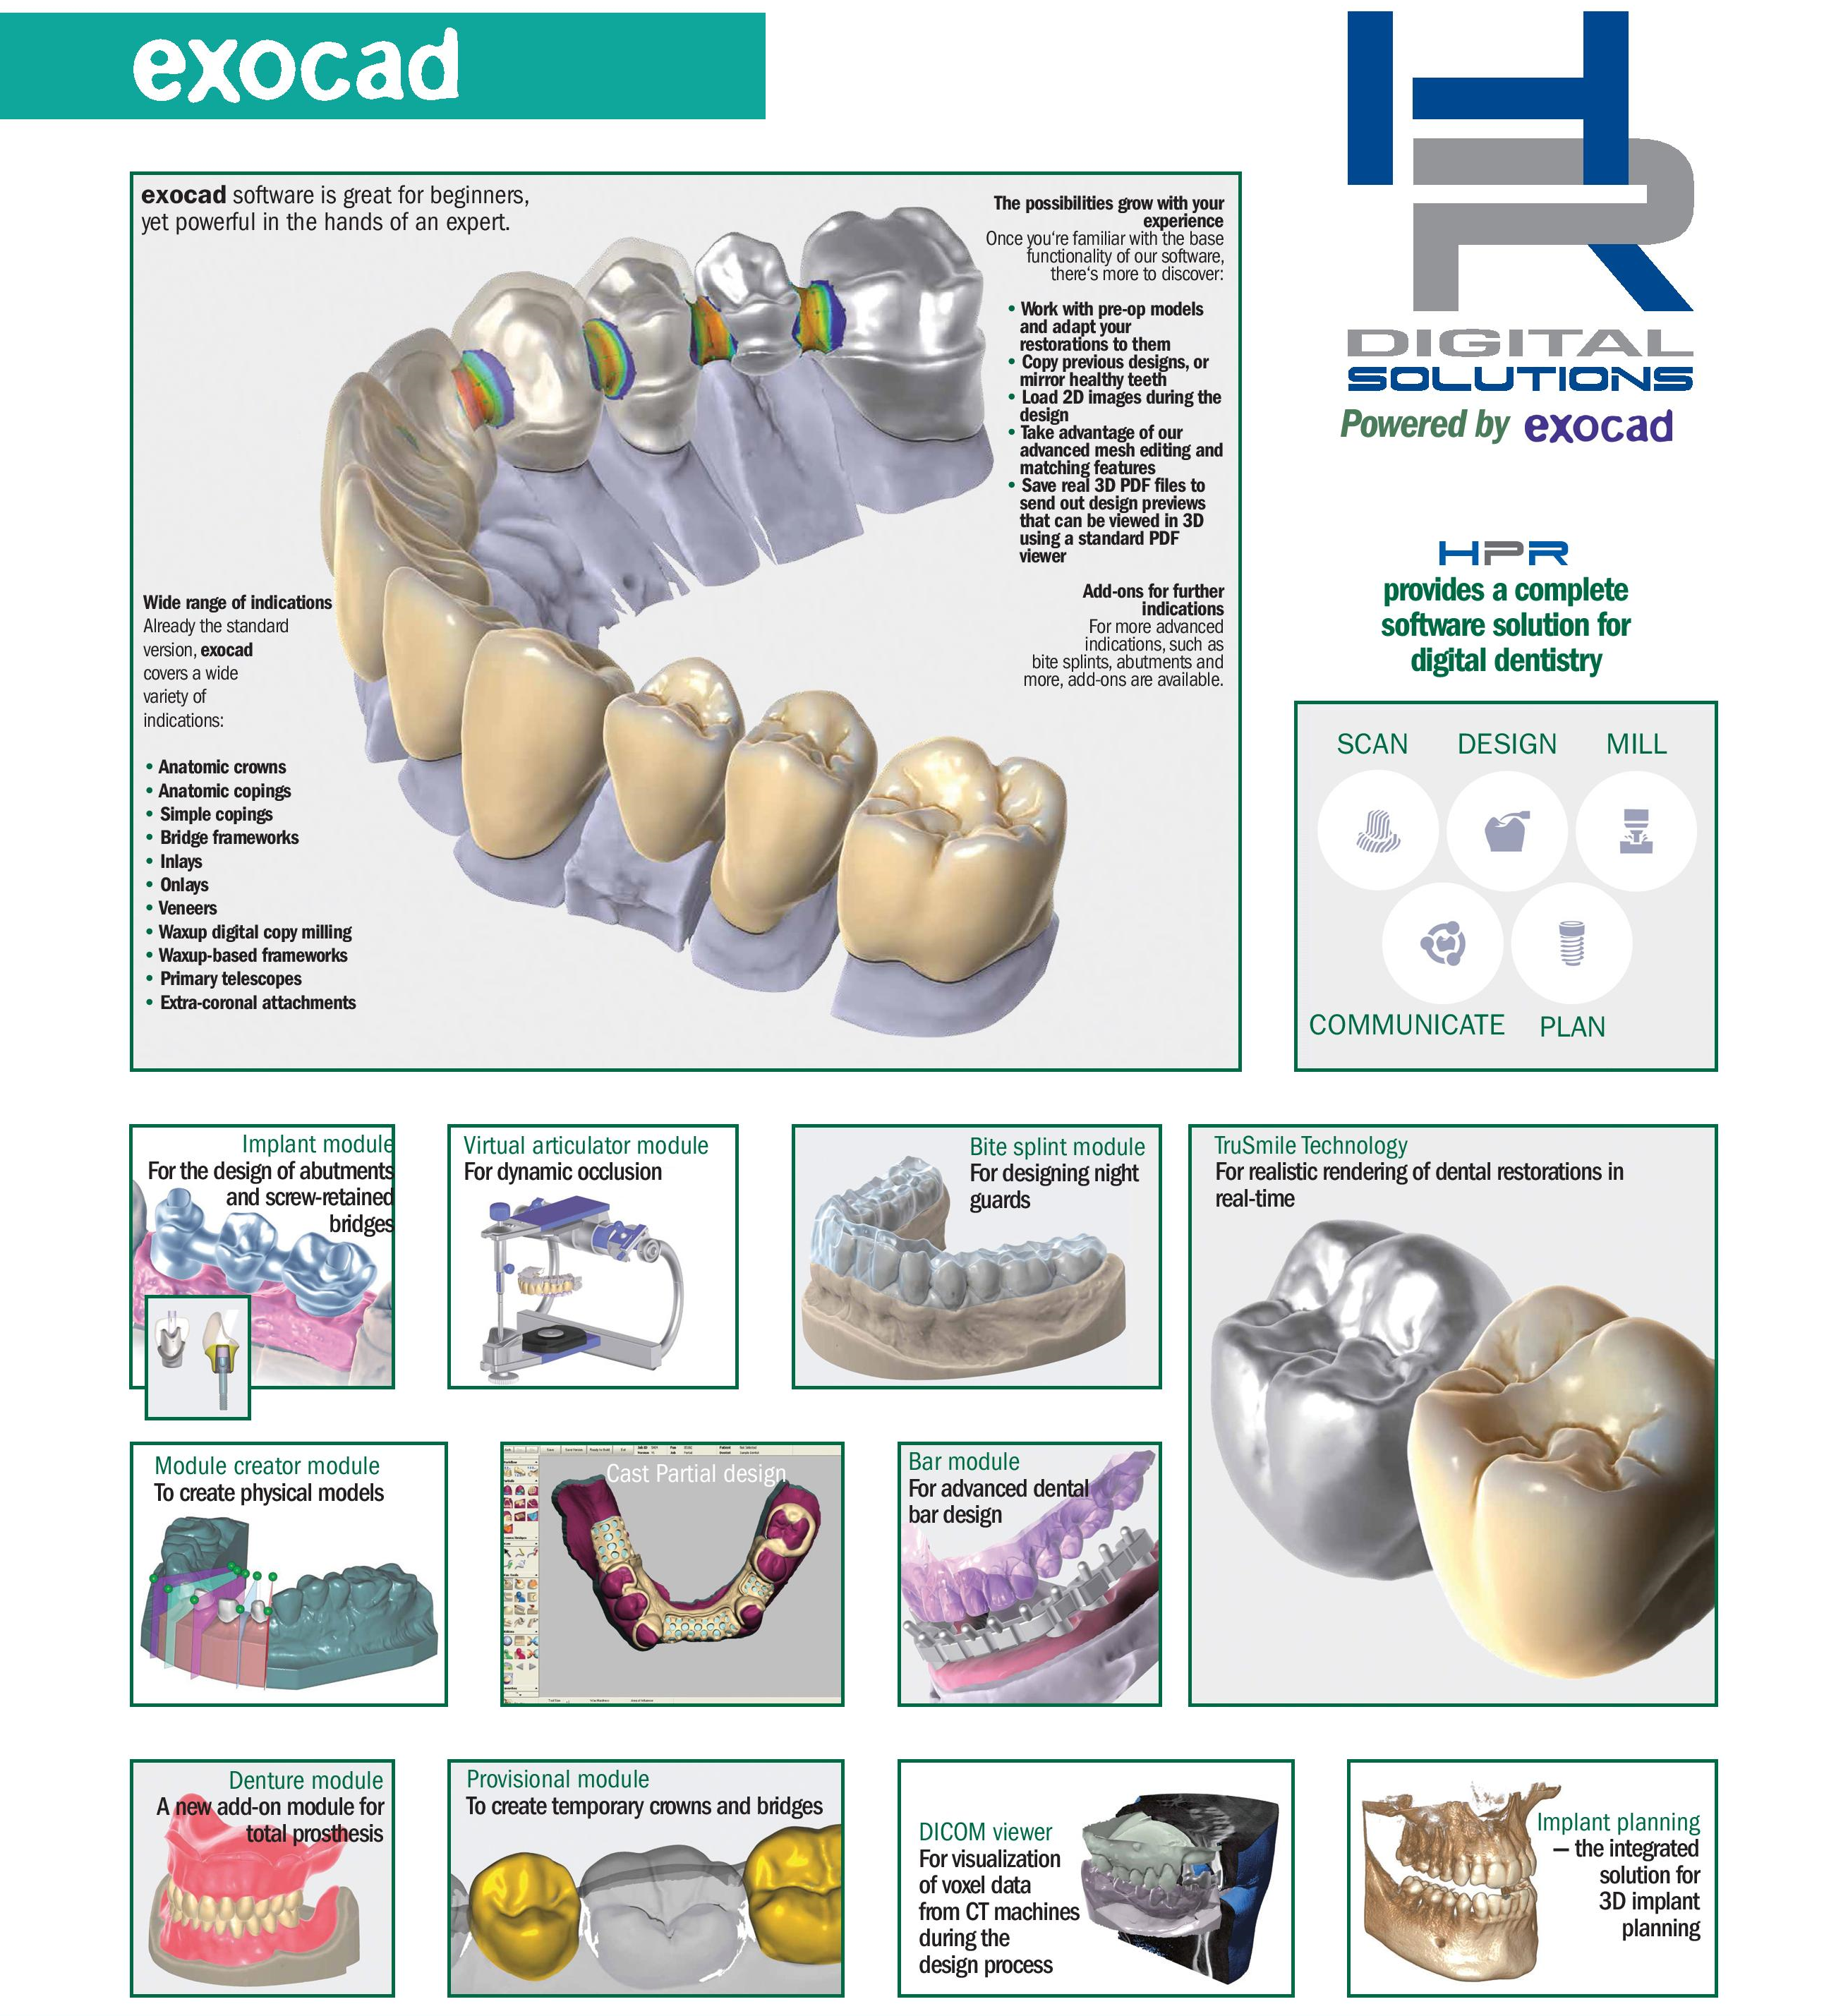 A complete software solution for Digital Dentistry